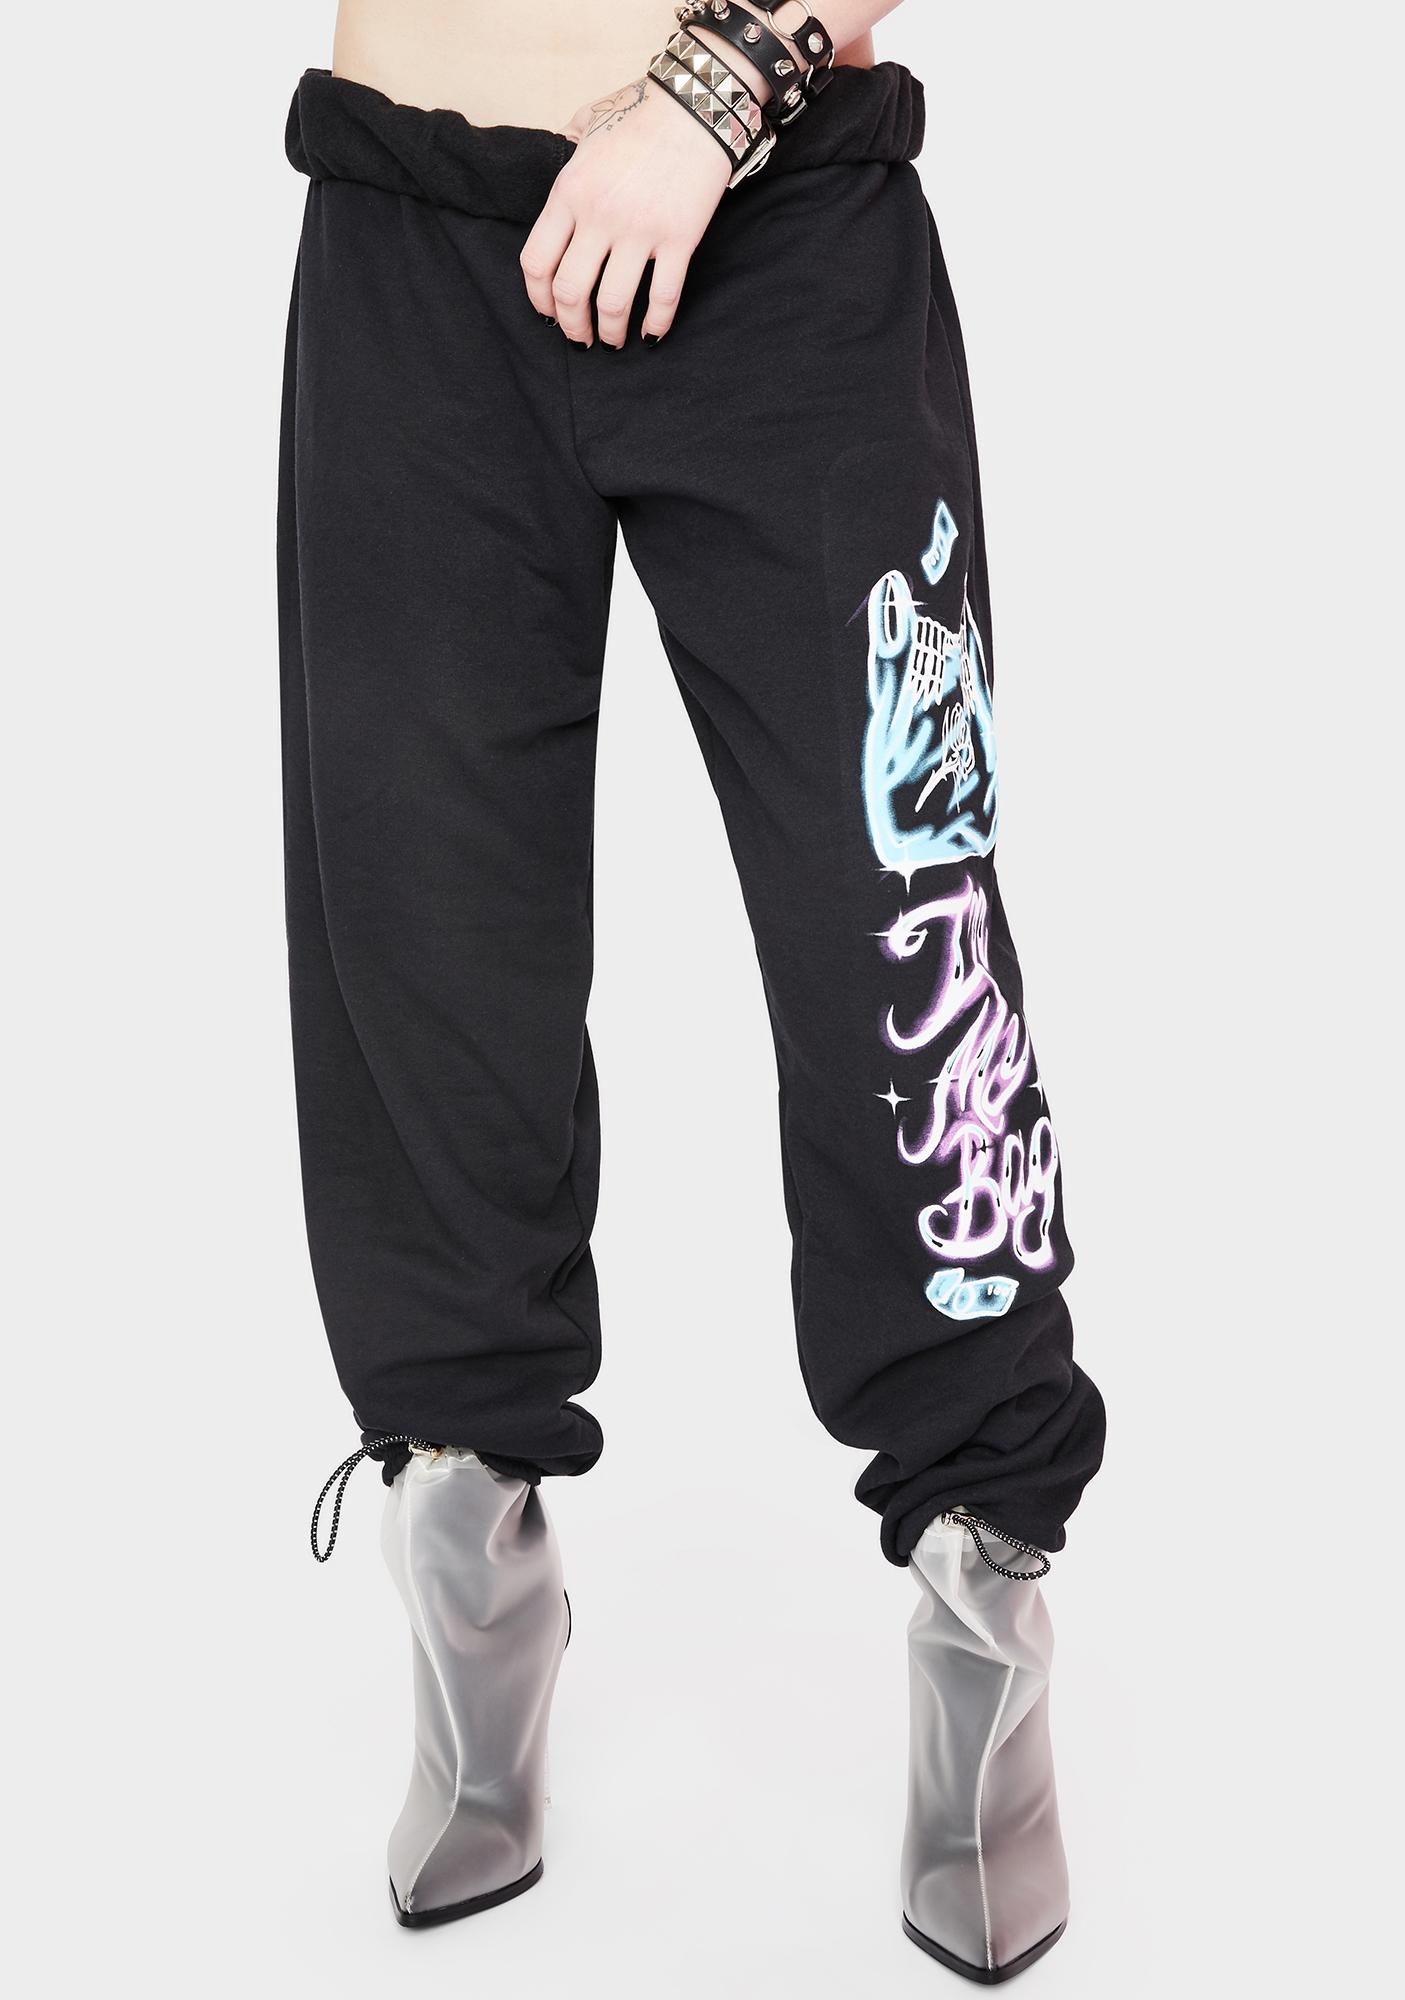 Samborghini In My Bag Graphic Sweatpants